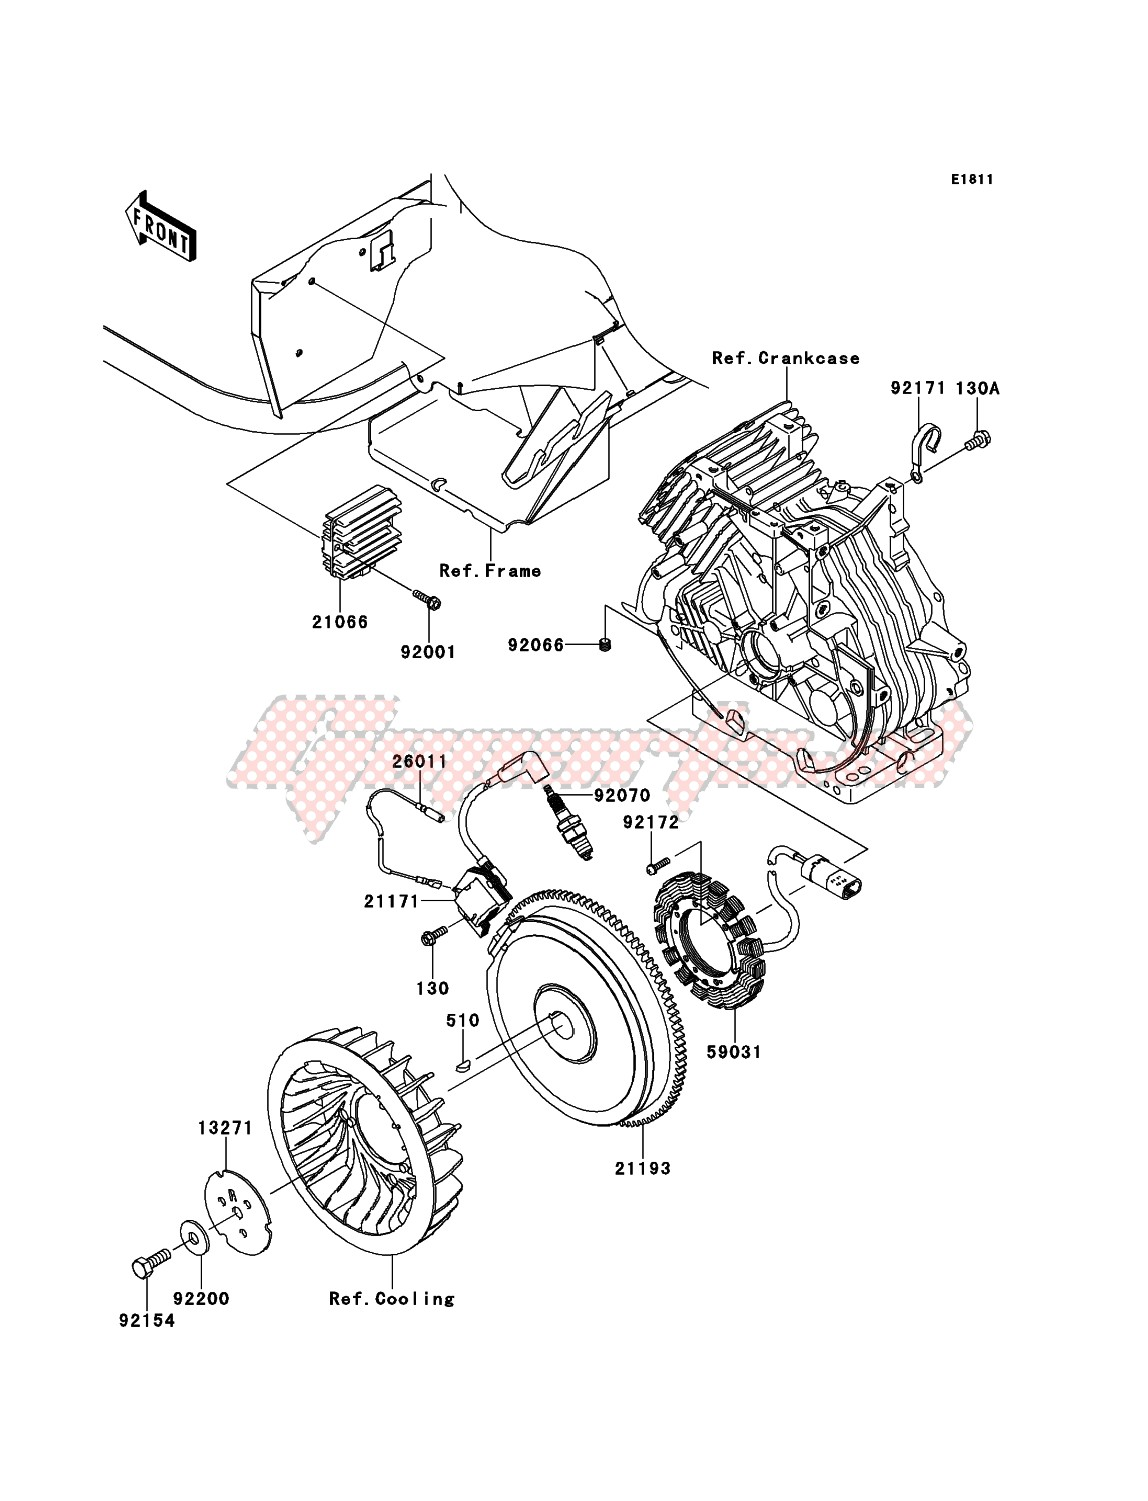 Generator/Ignition Coil image